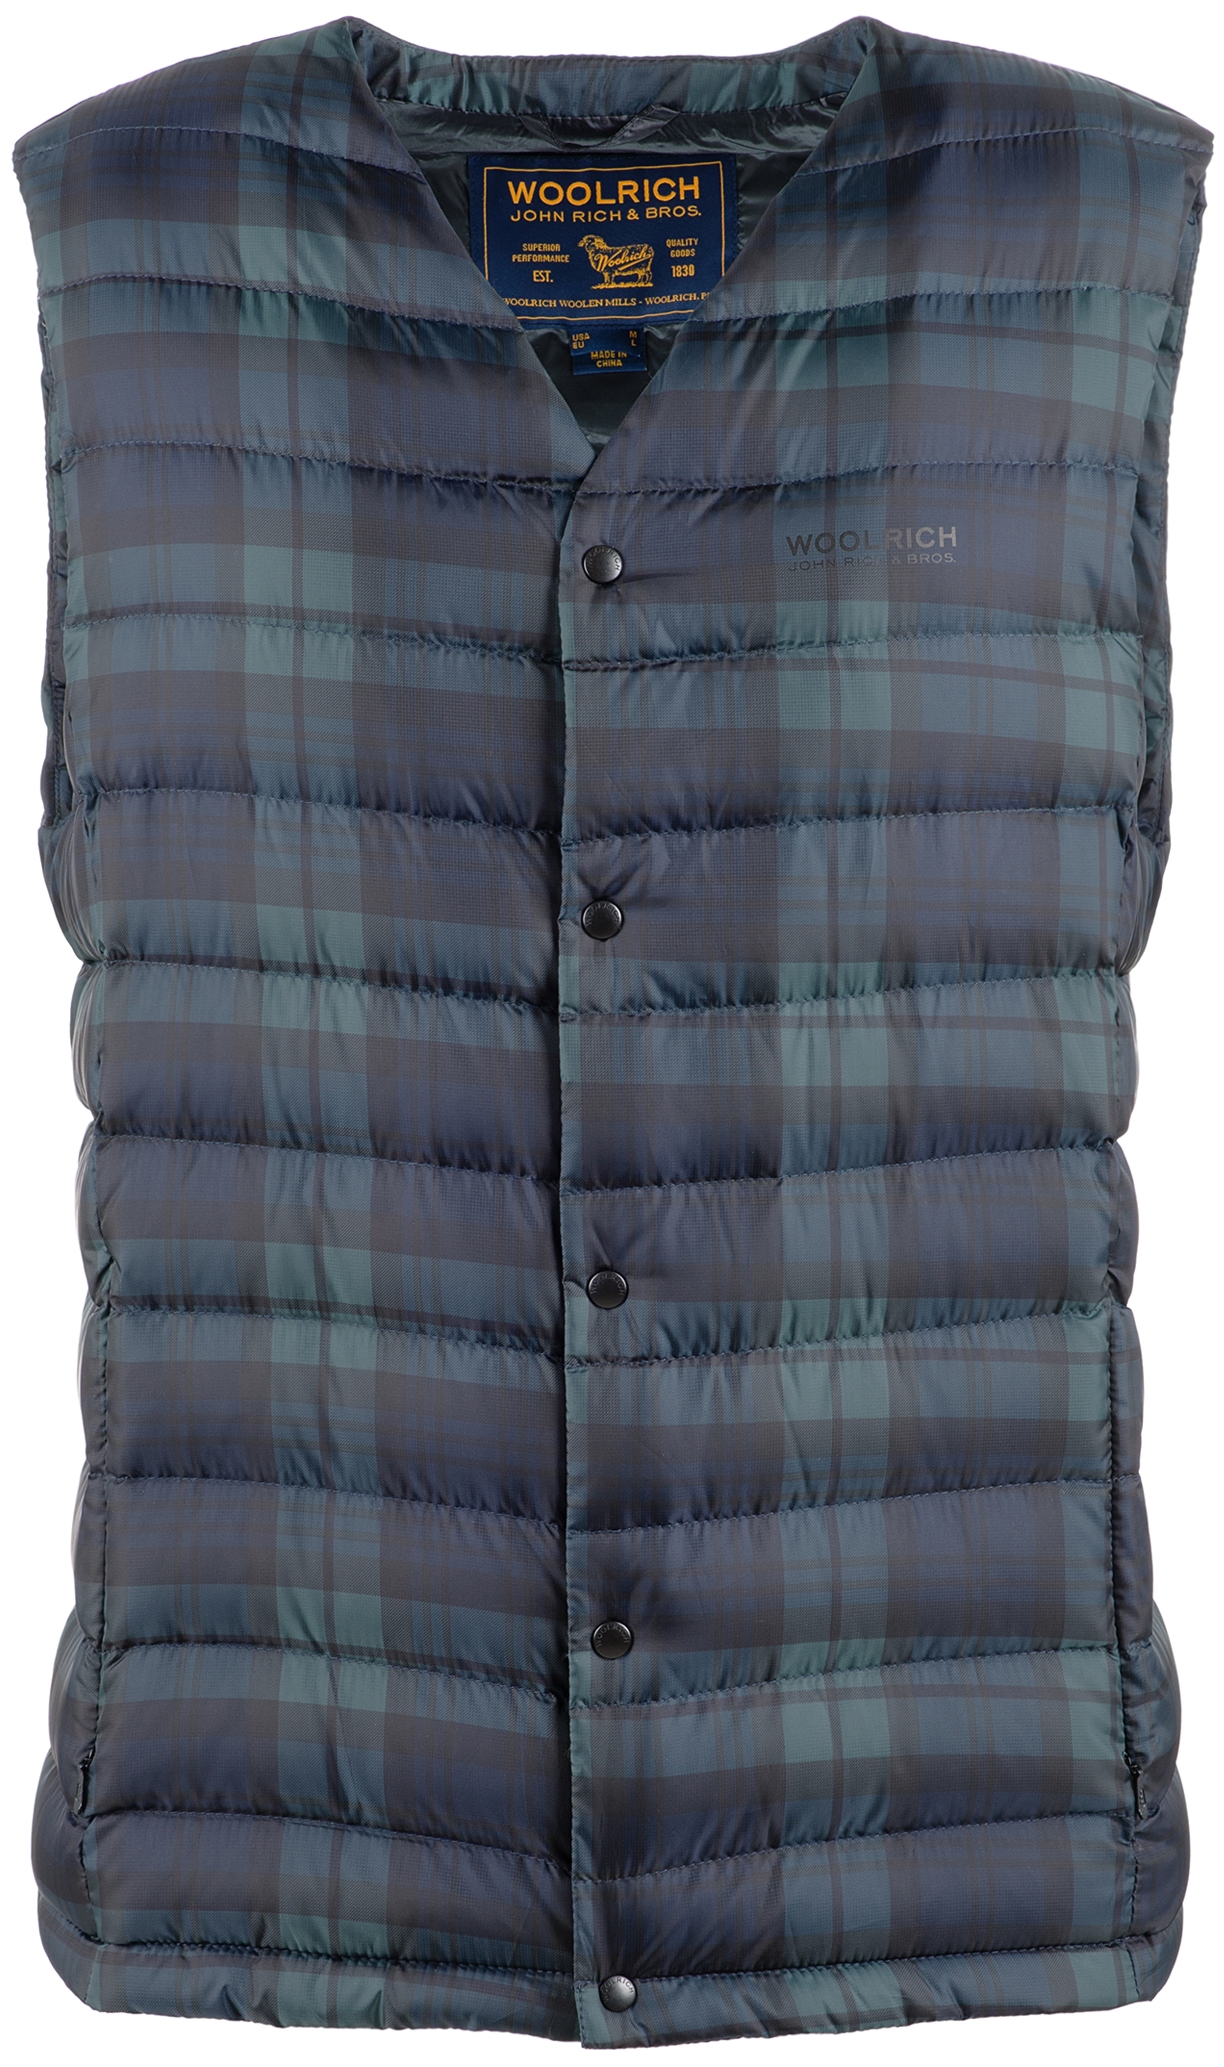 Woolrich® John Rich + Bros. Tailored Vest, $260